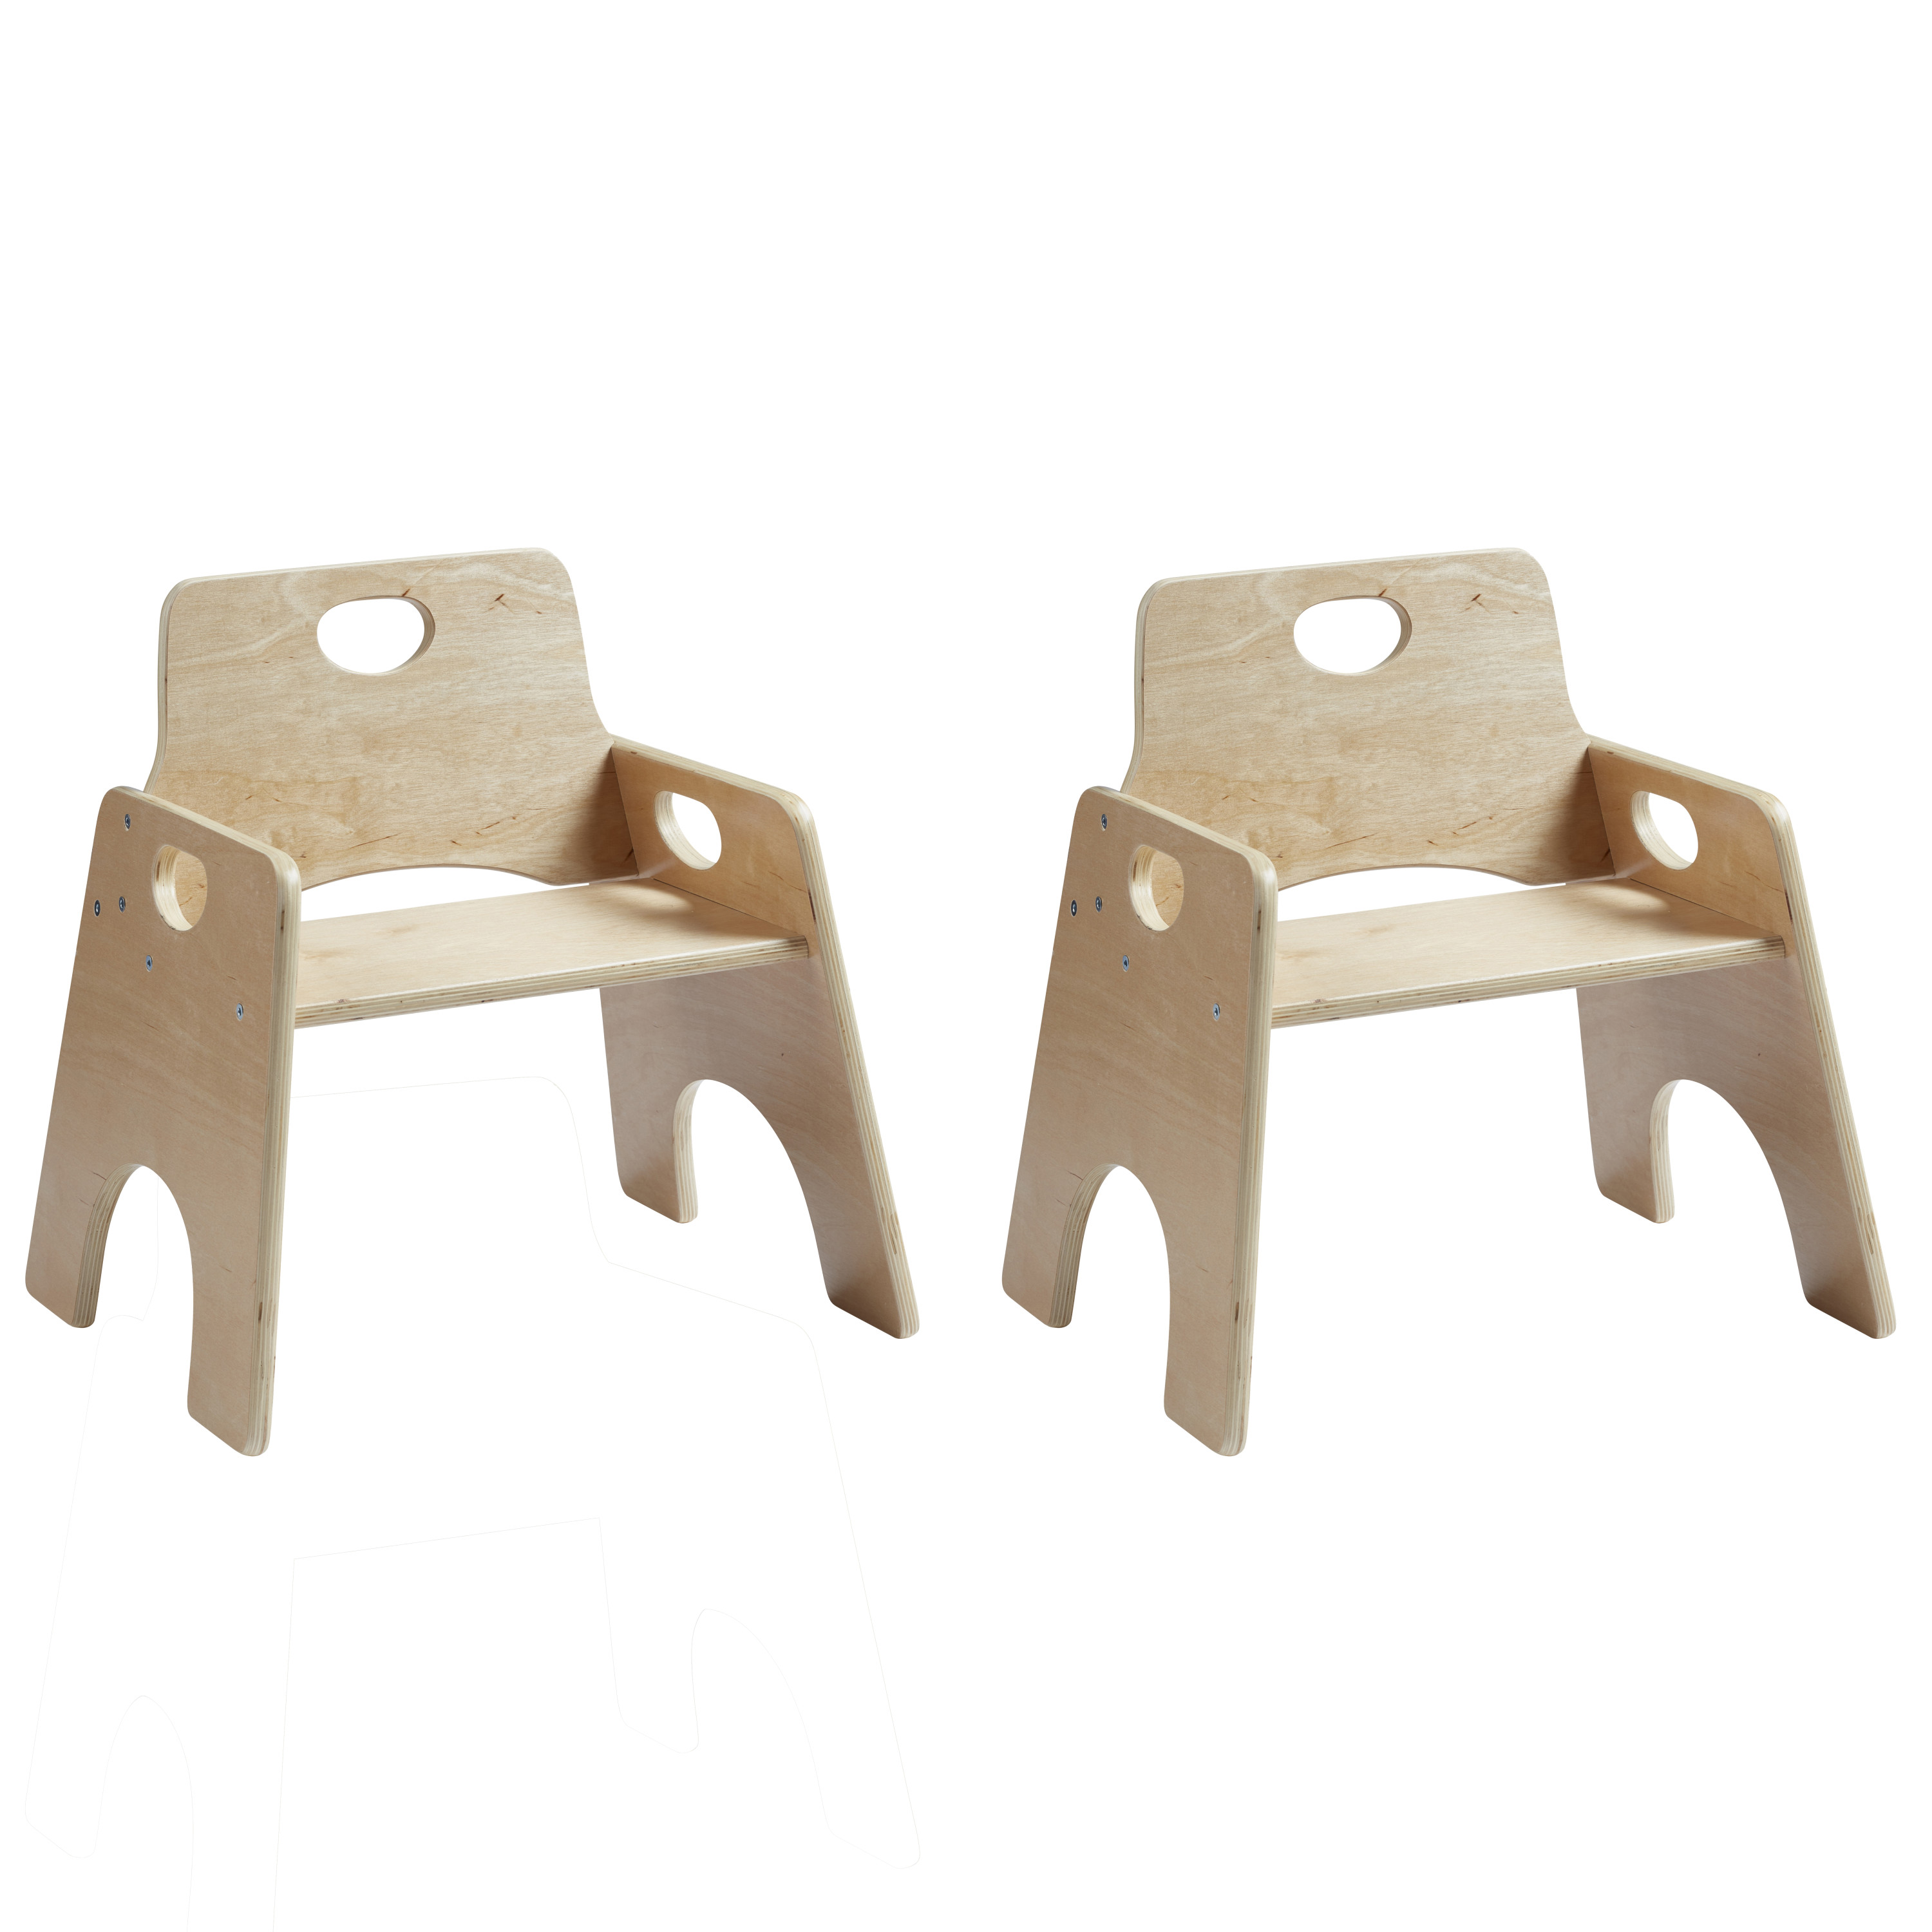 Toddler Wooden Chair Ecr4kids 10in Stackable Wooden Toddler Chair Ready To Assemble